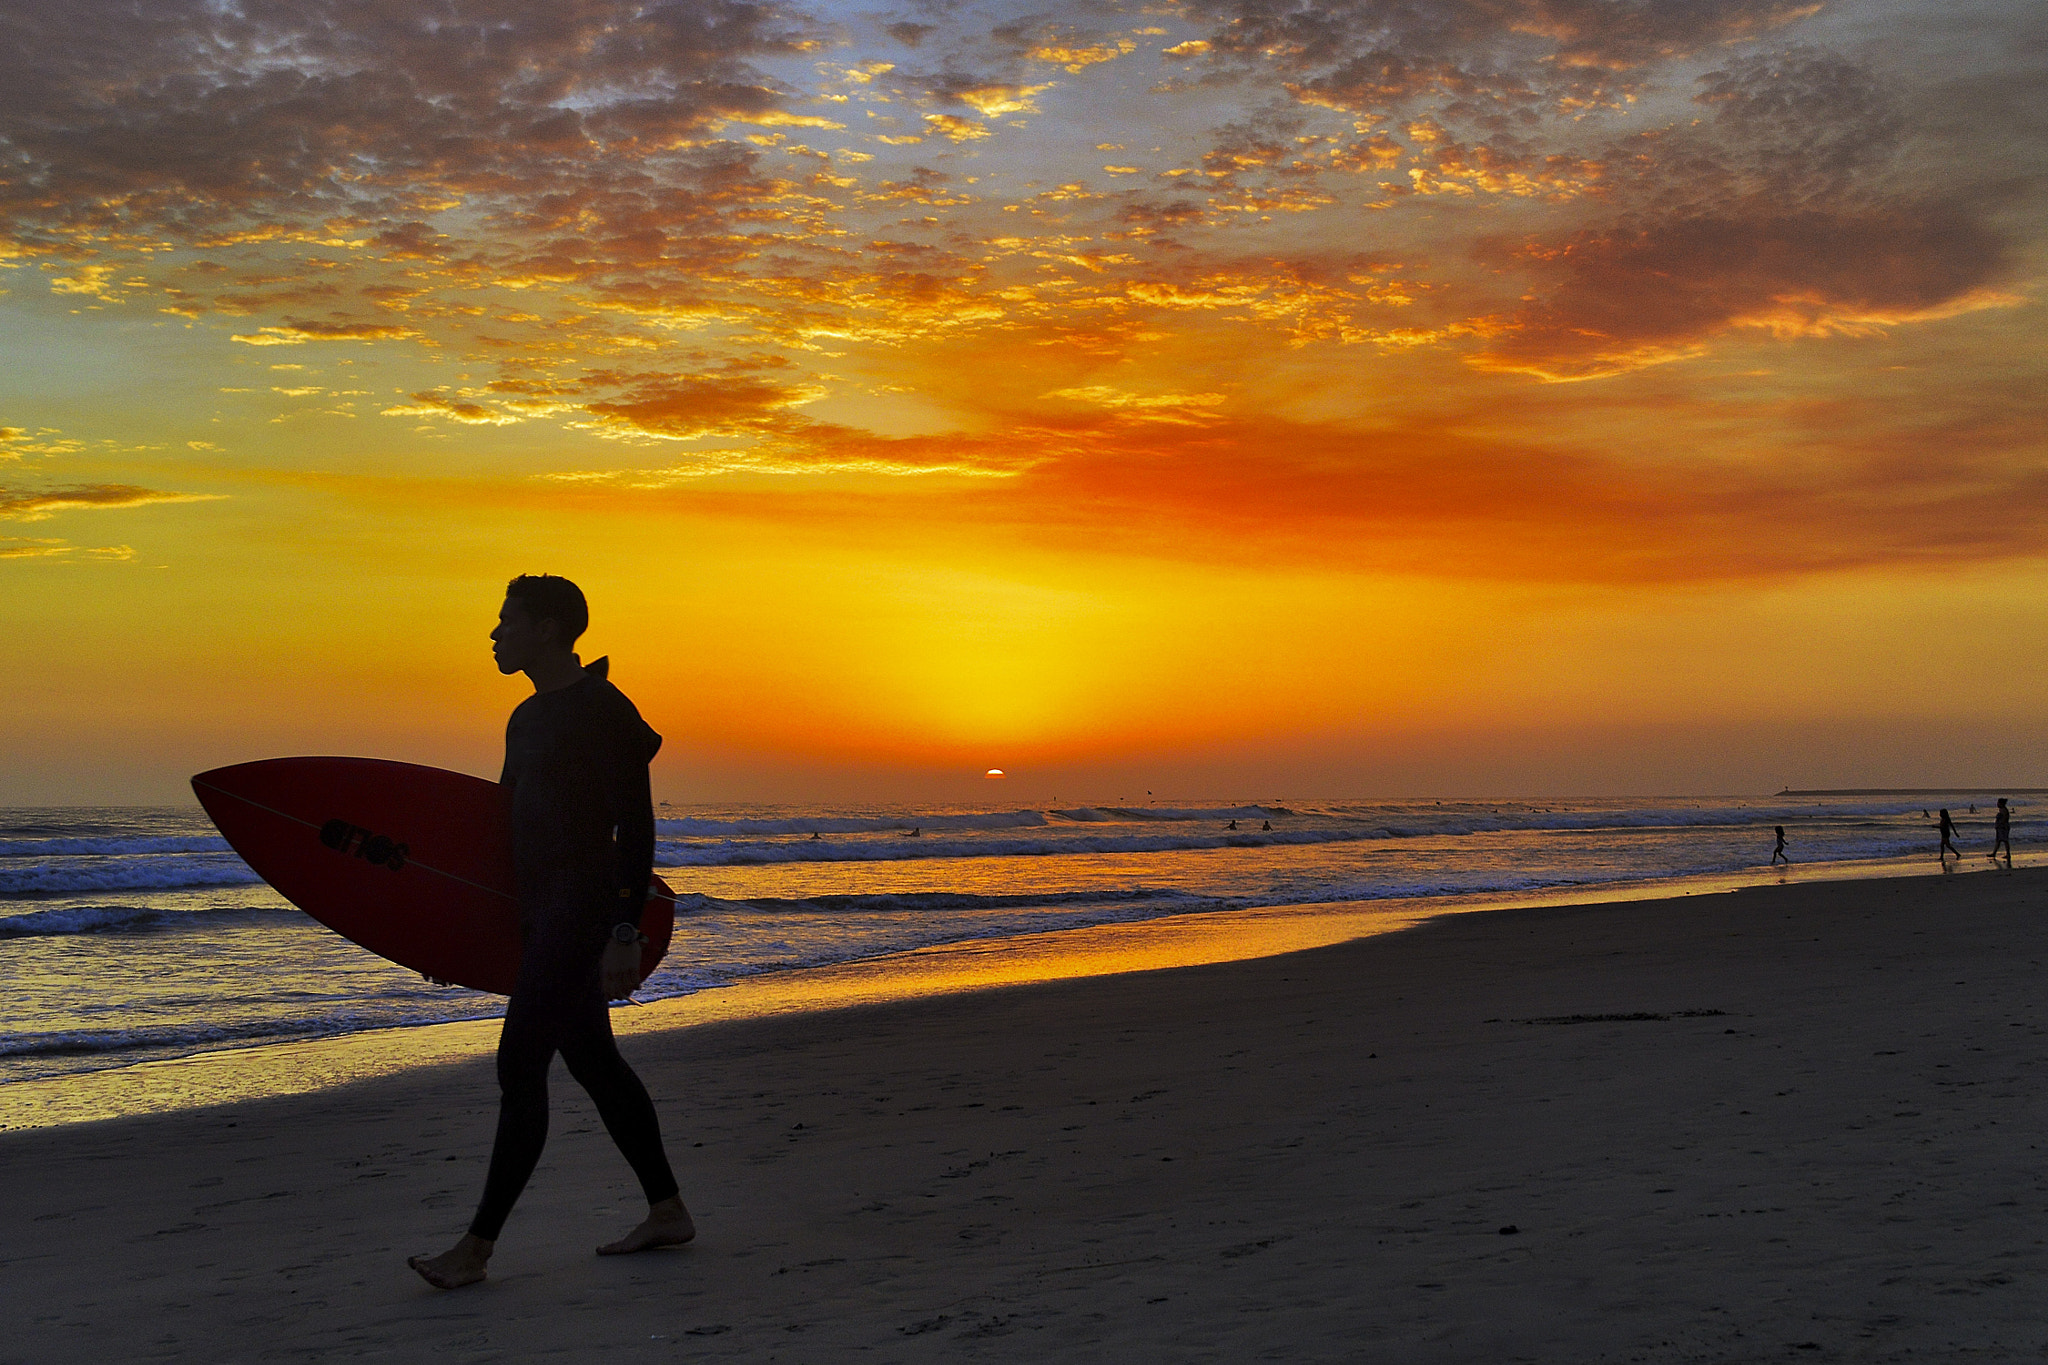 Photograph Surfer at Sunset in Oceanside - August 9, 2012 by Rich Cruse on 500px